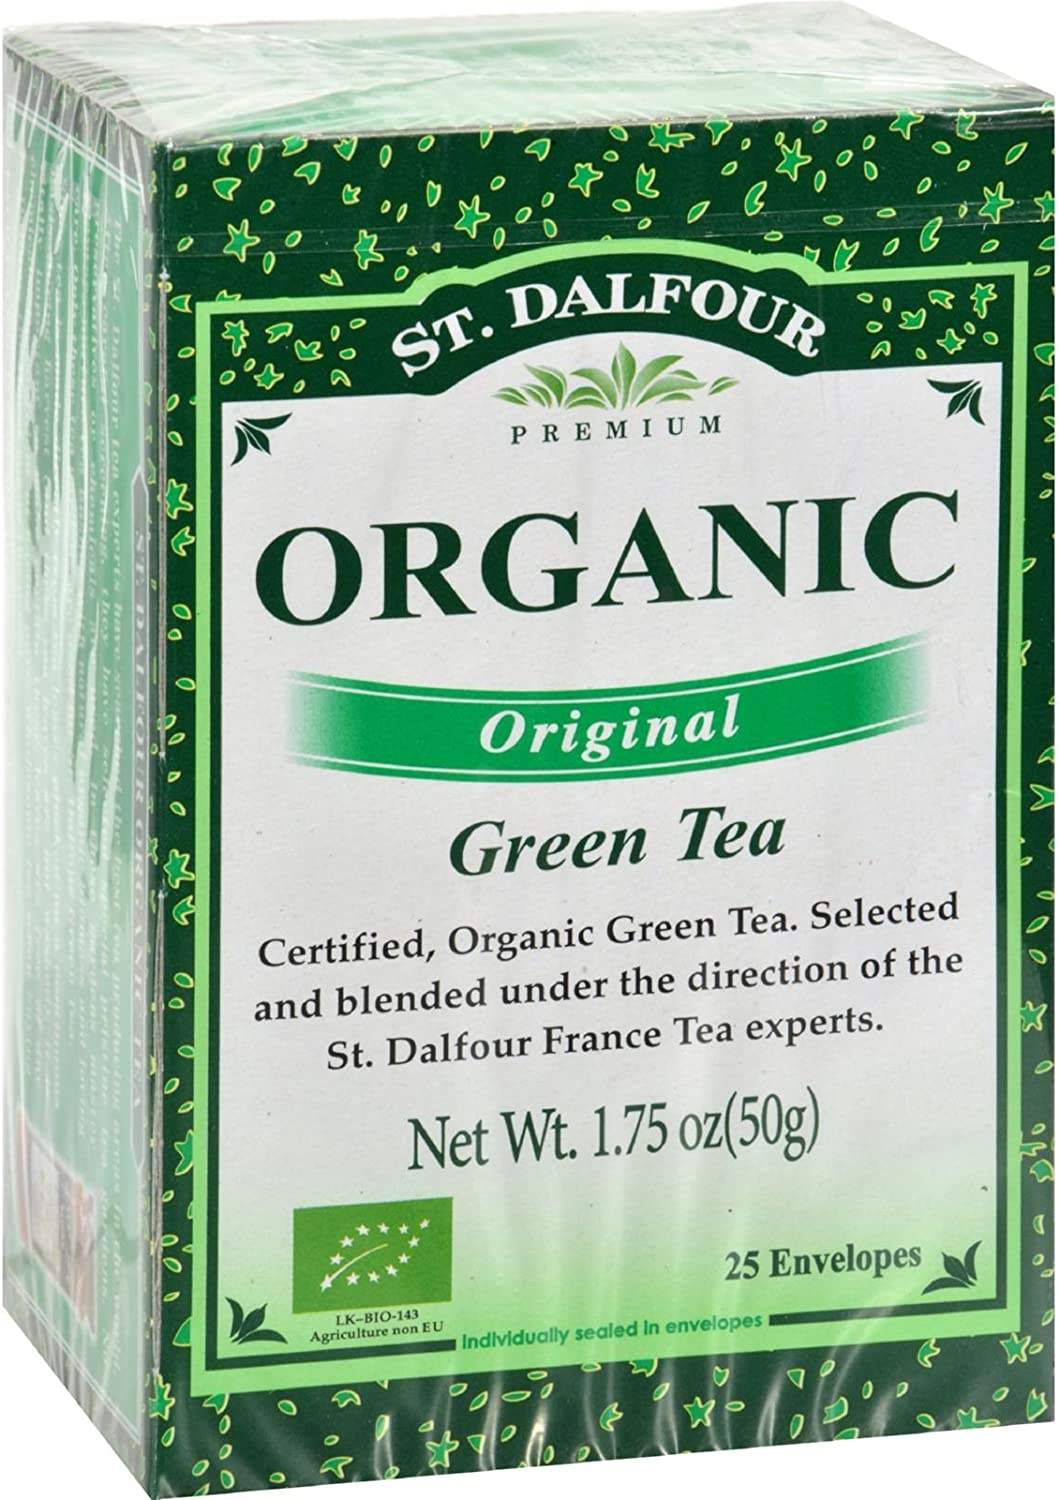 St Dalfour Organic Green Tea Original – 25 Tea Bags – Case of 6